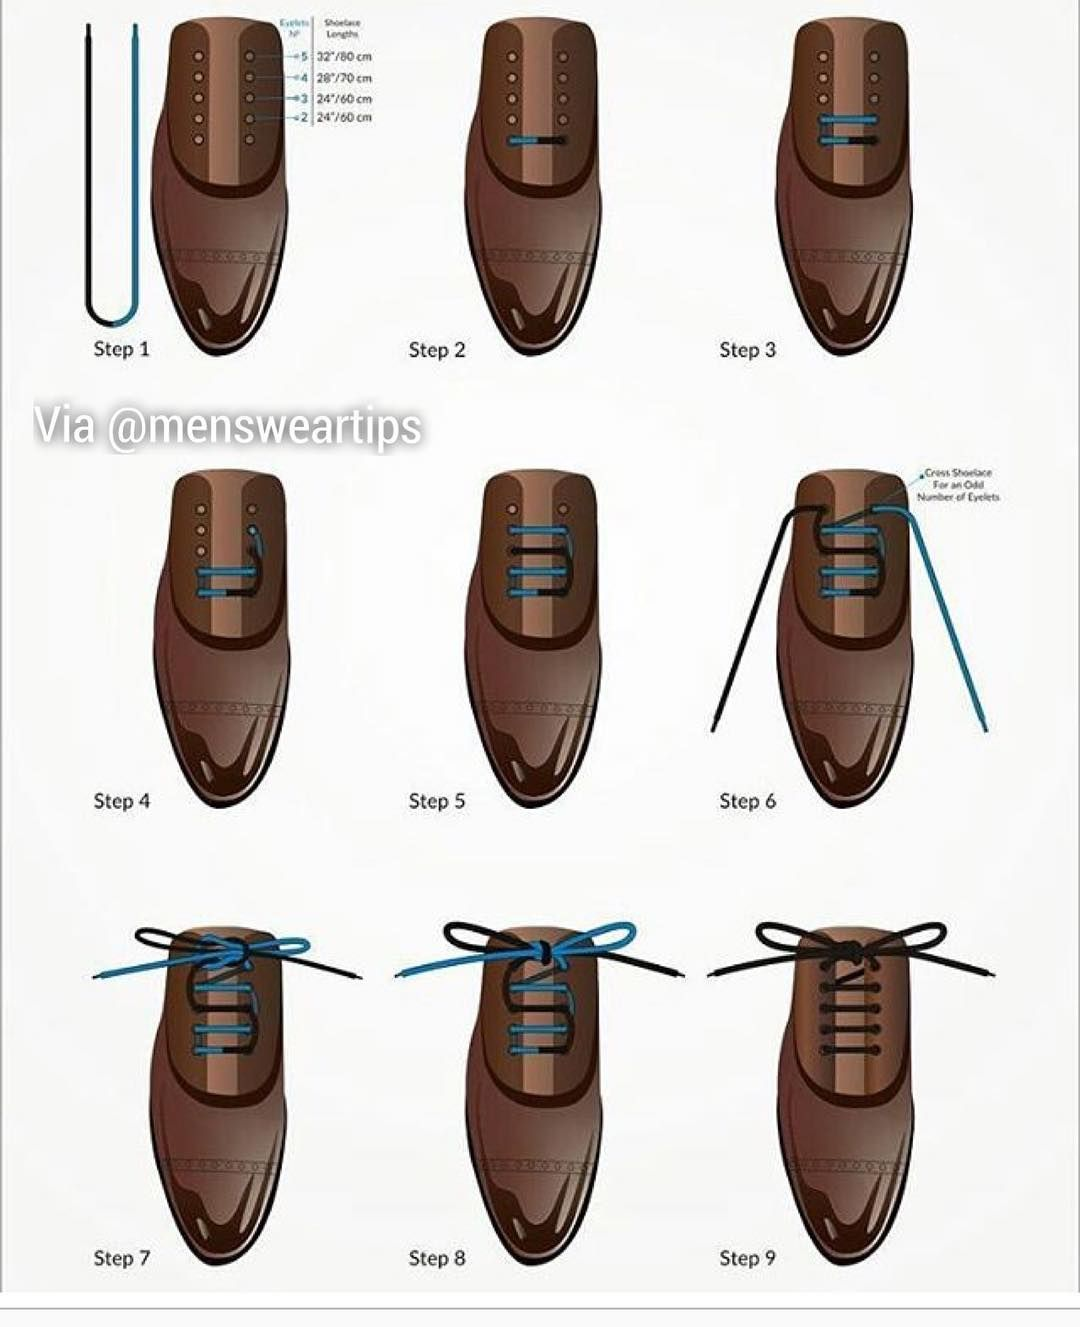 d1750117de47 Here is a step by step guide to a straight bar lacing! By the cleanest  looking way to tie your shoe lace in! Tag your friend for an easy style  upgrade!